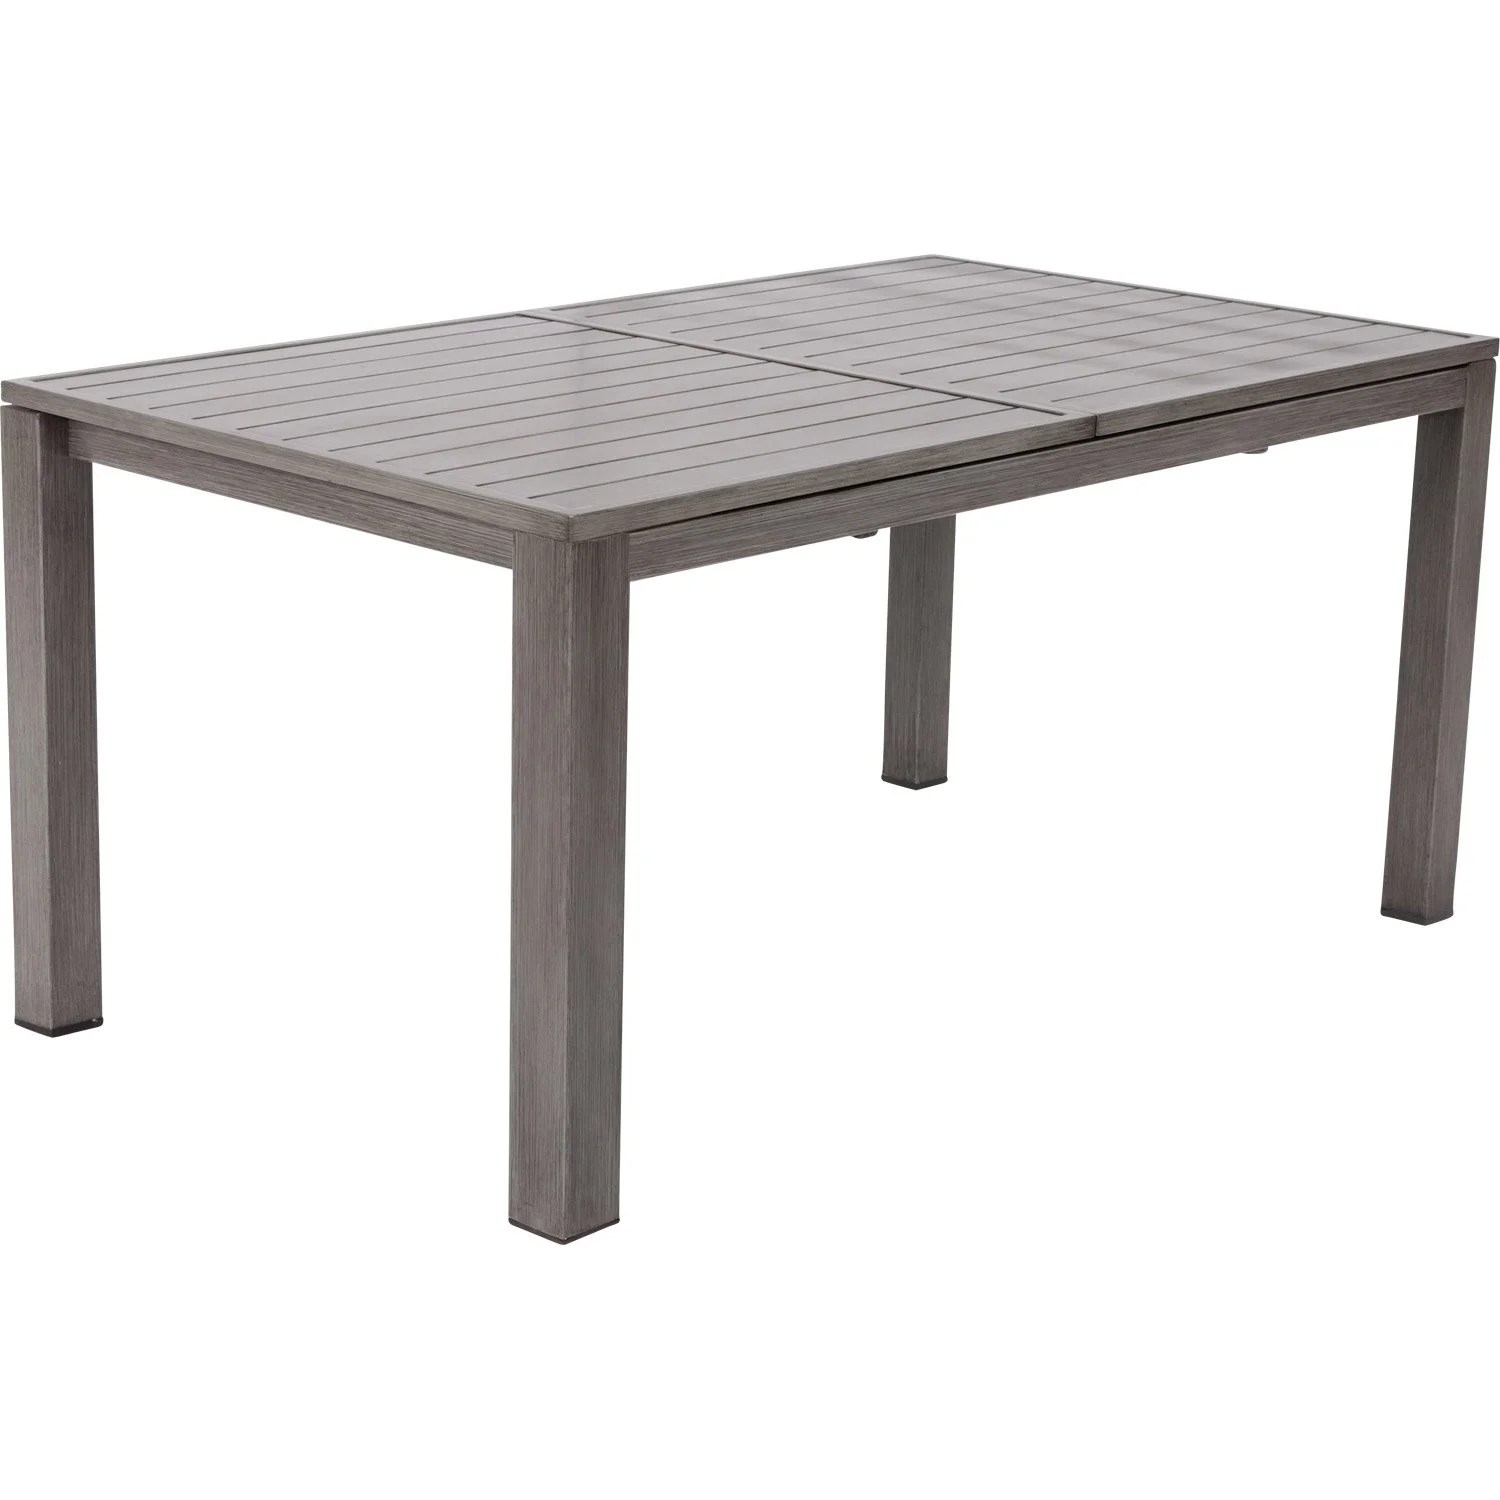 Table Bois 6 Personnes Table De Jardin Naterial Antibes Rectangulaire Gris Look